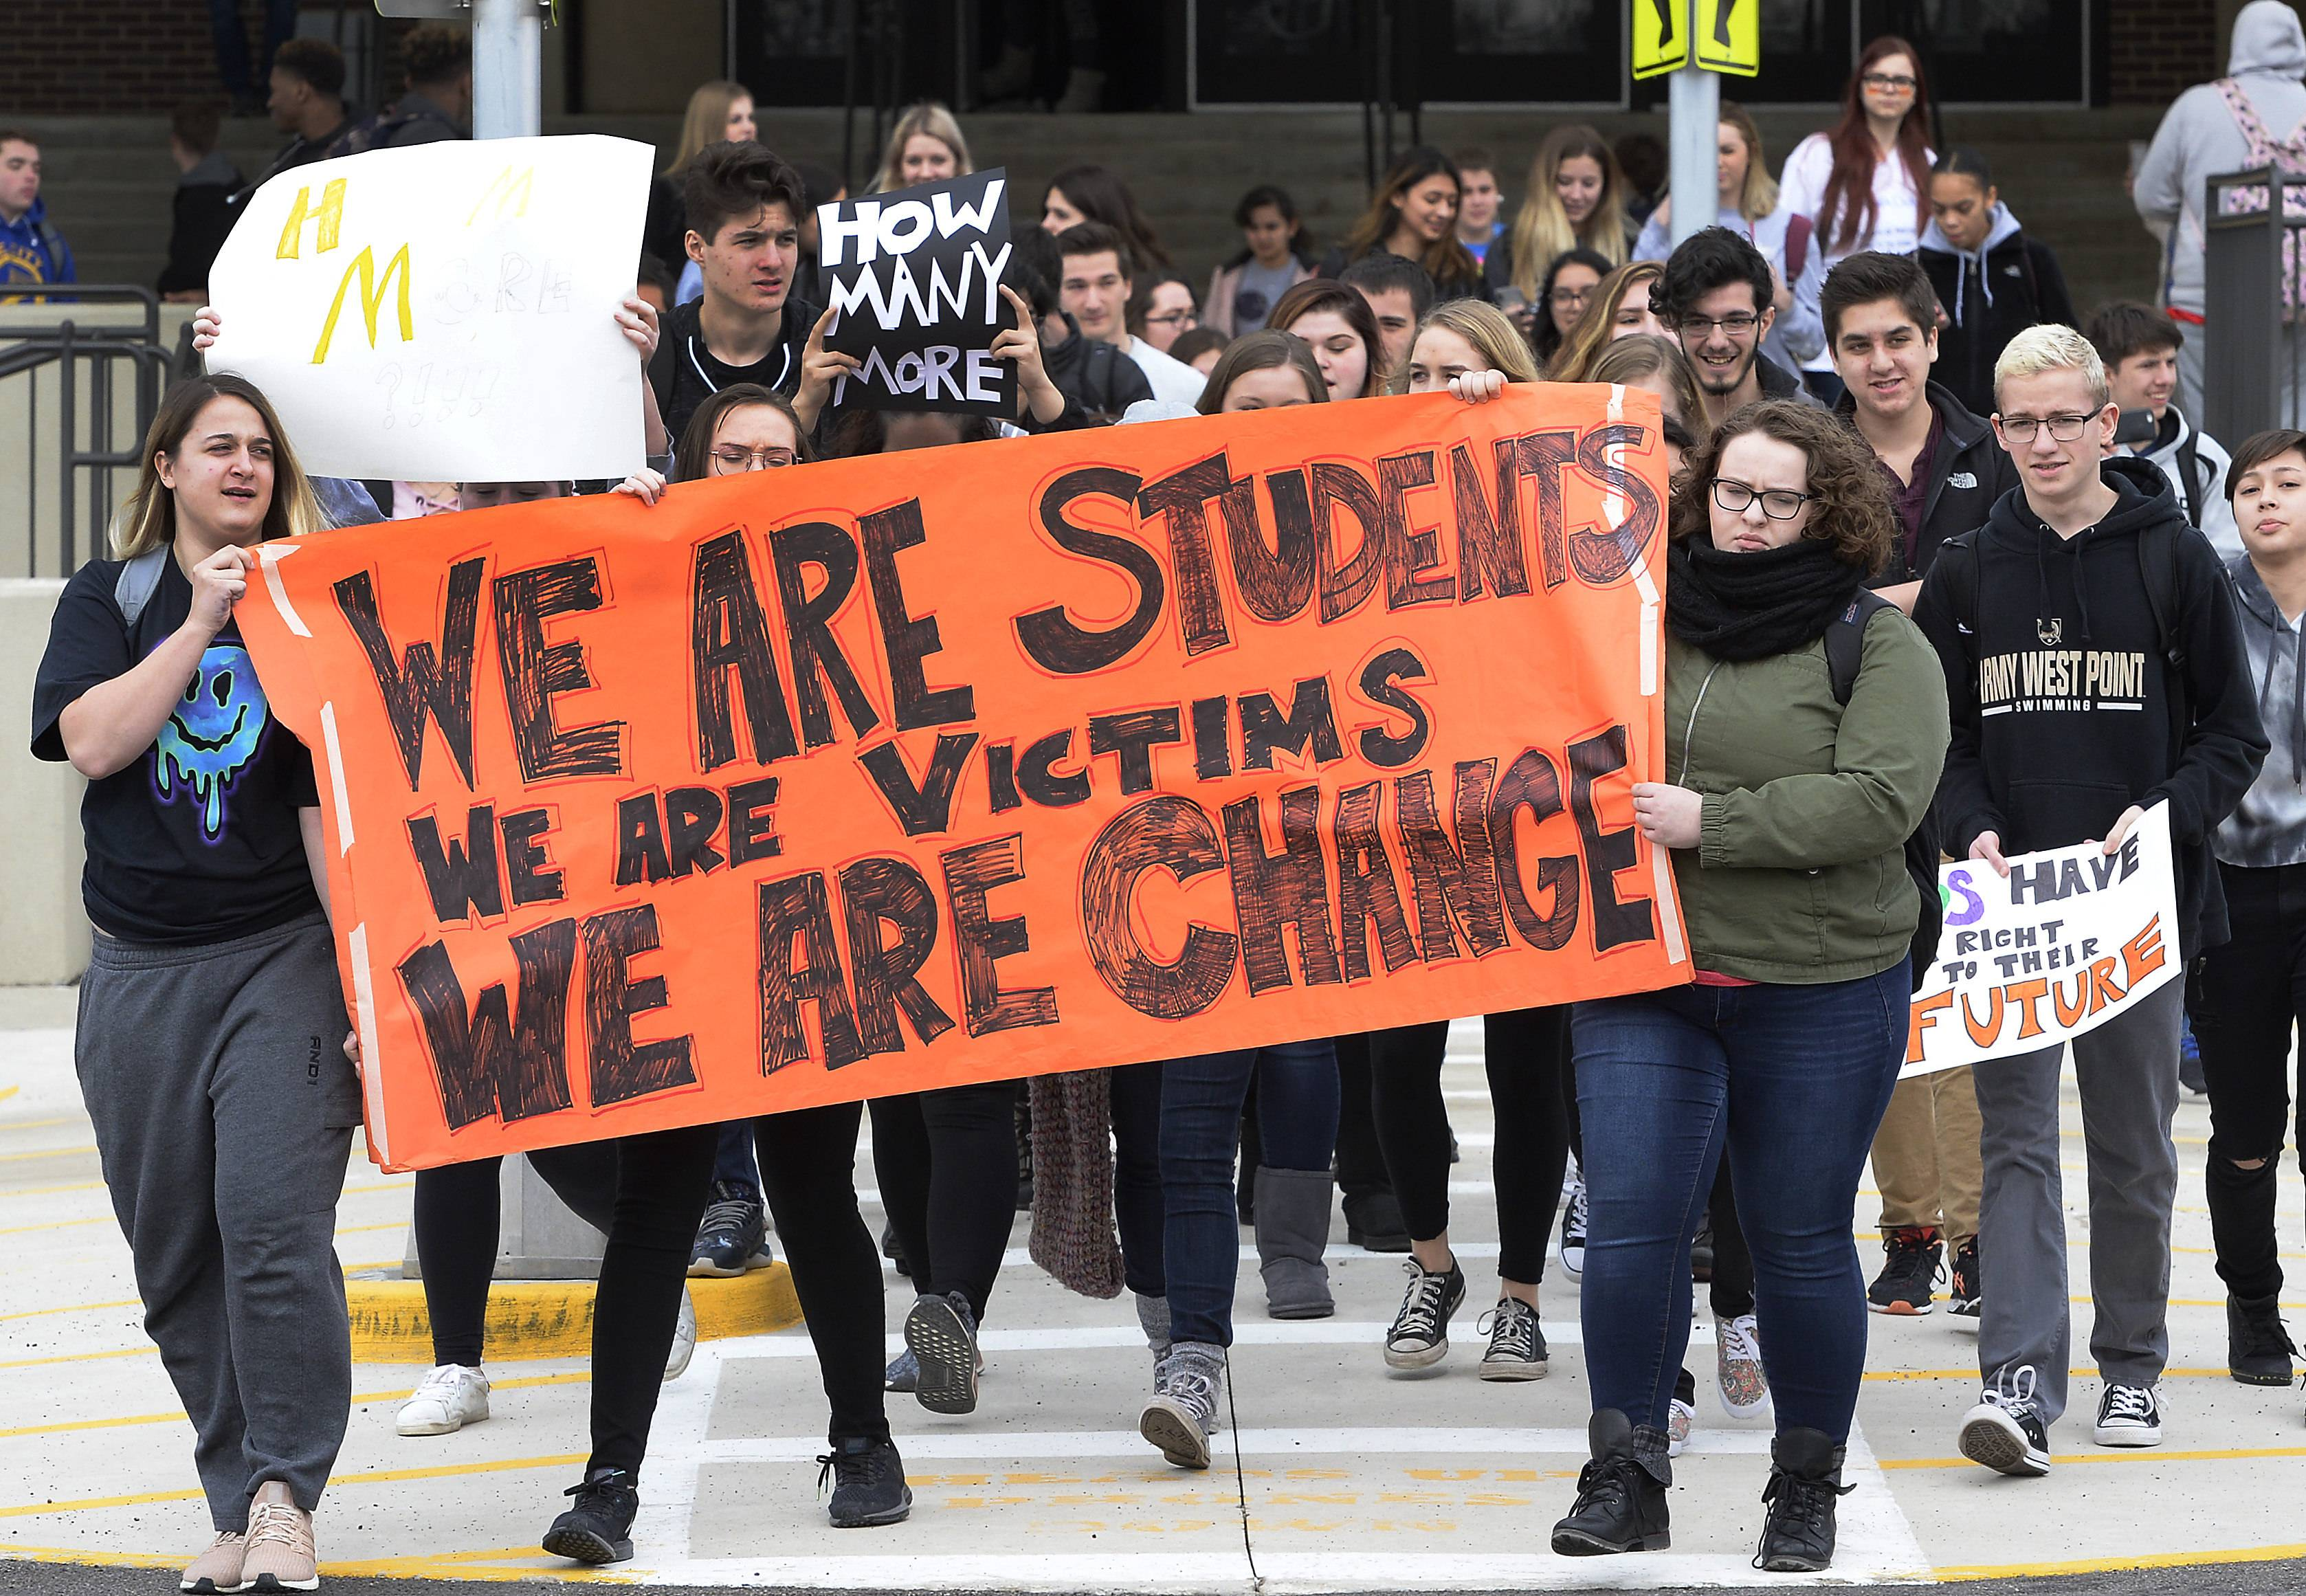 An estimated 1,200 Schaumburg High School students walked out of classes Wednesday as part of a nationwide protest for stricter gun control measures in the wake of the killing of 17 students and staff last week at a Florida high school.